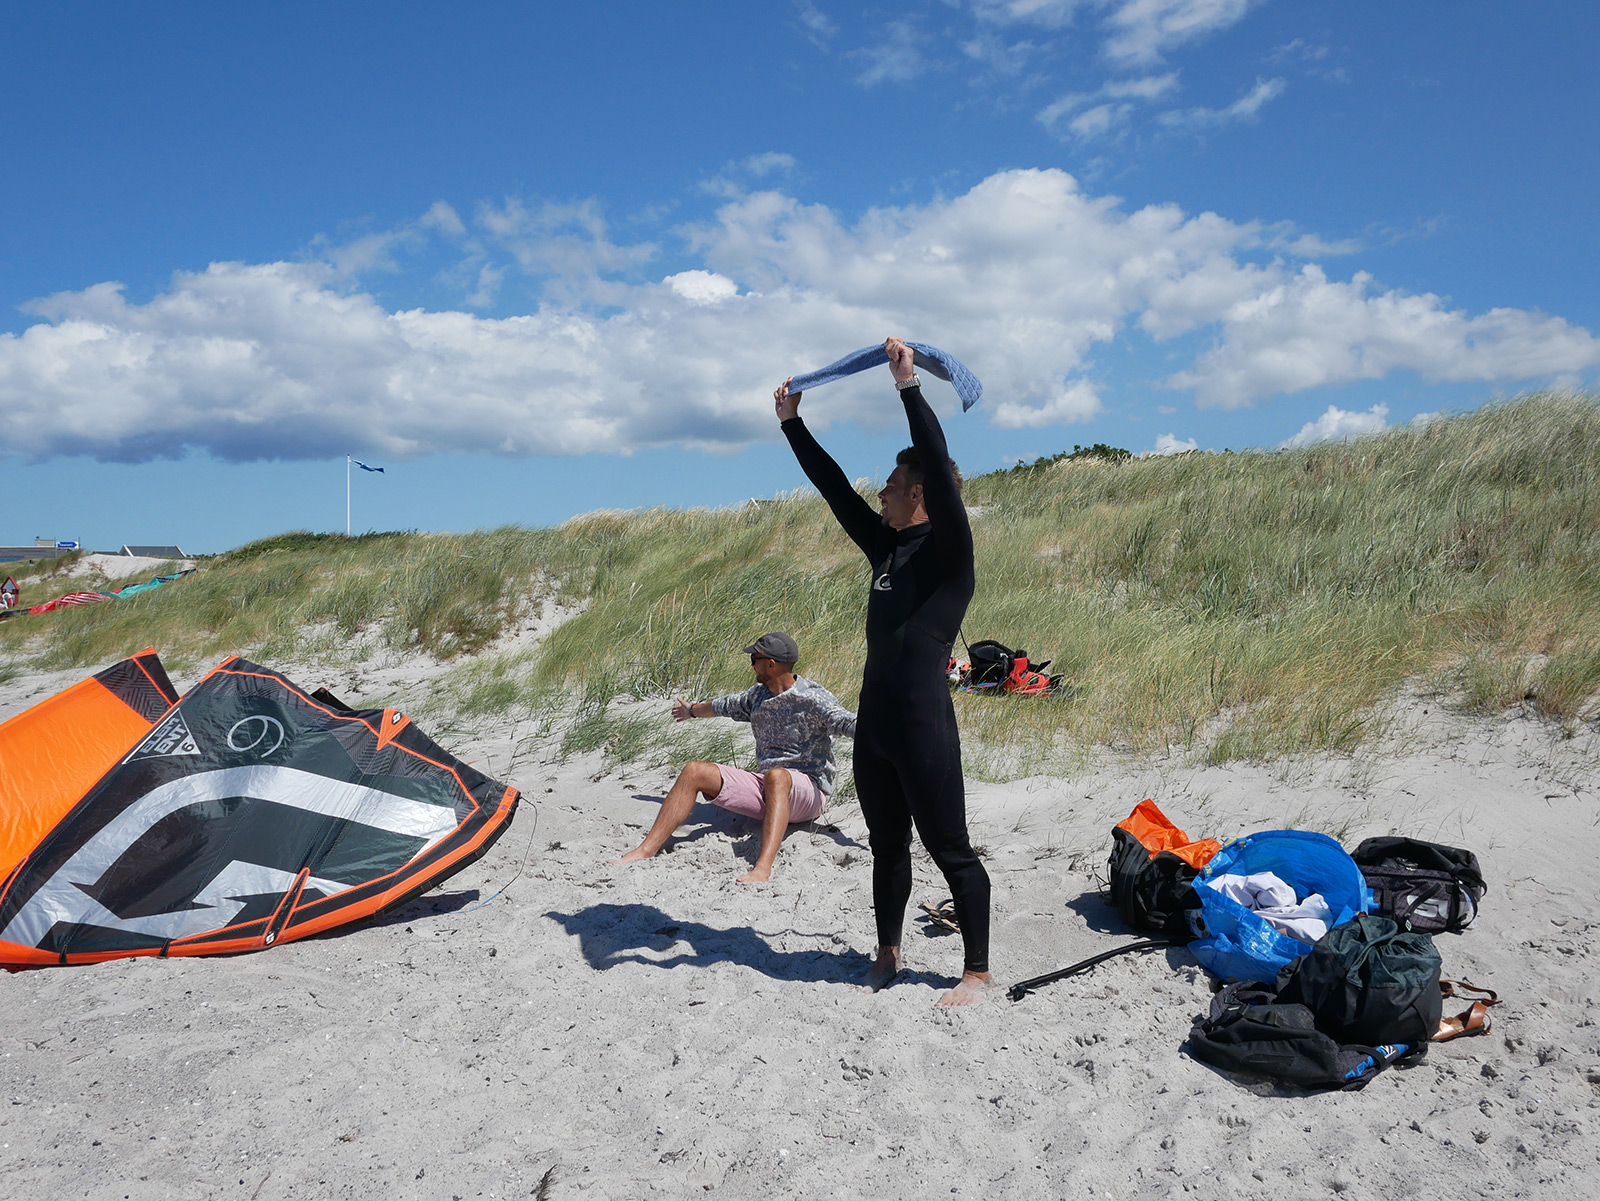 Kitesurfer's on the beach at Skanor, Sweden